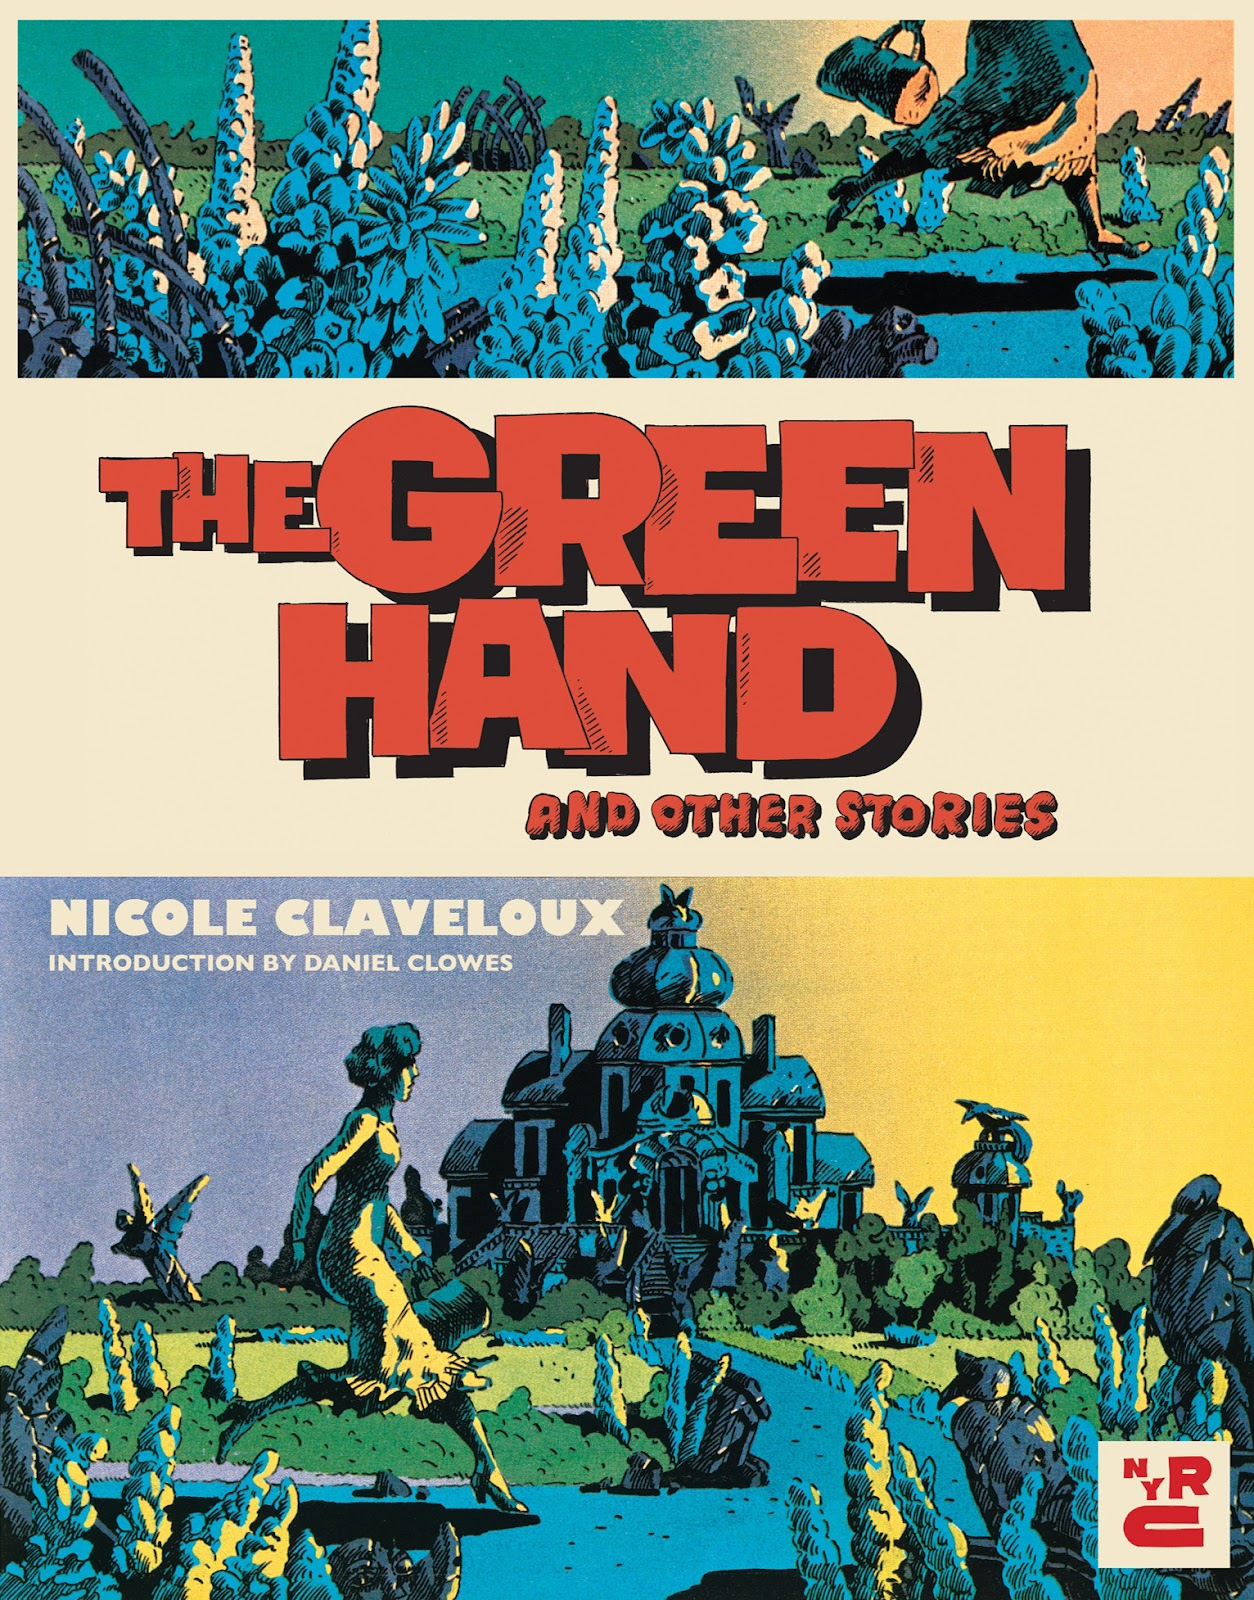 Read online The Green Hand and Other Stories comic -  Issue # TPB - 1